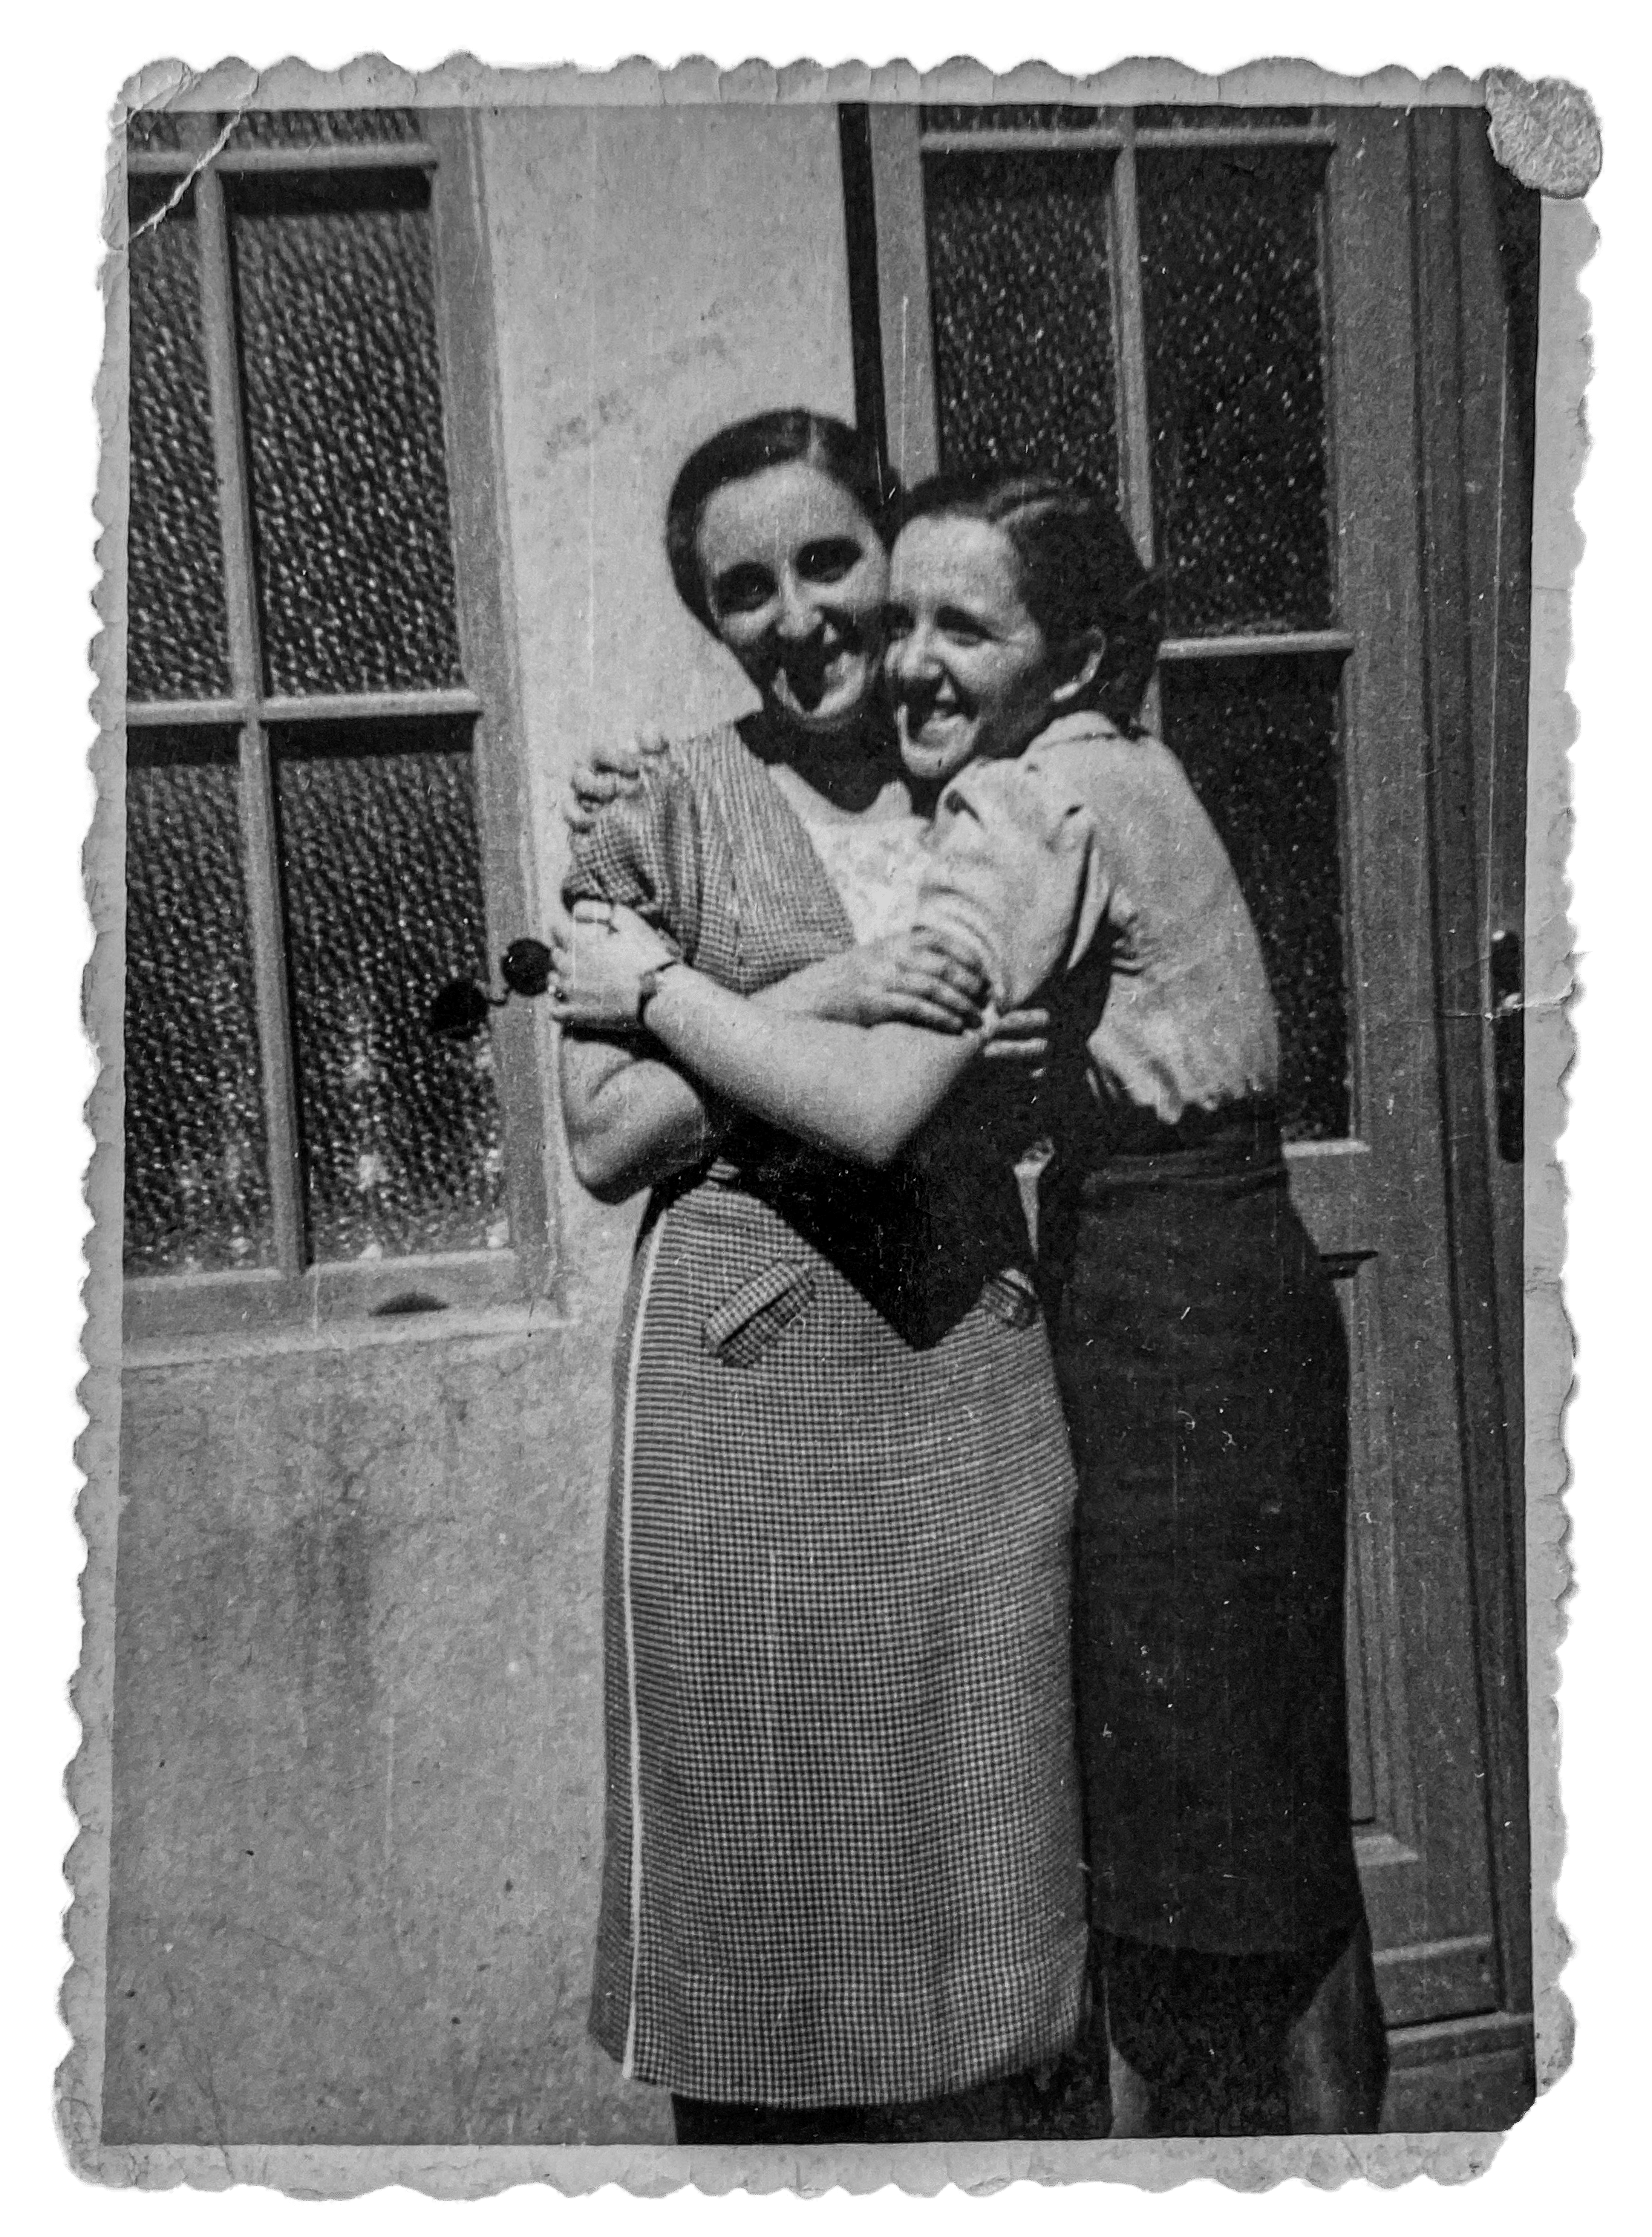 Magda and her mother, Aranka Riederman, 1938